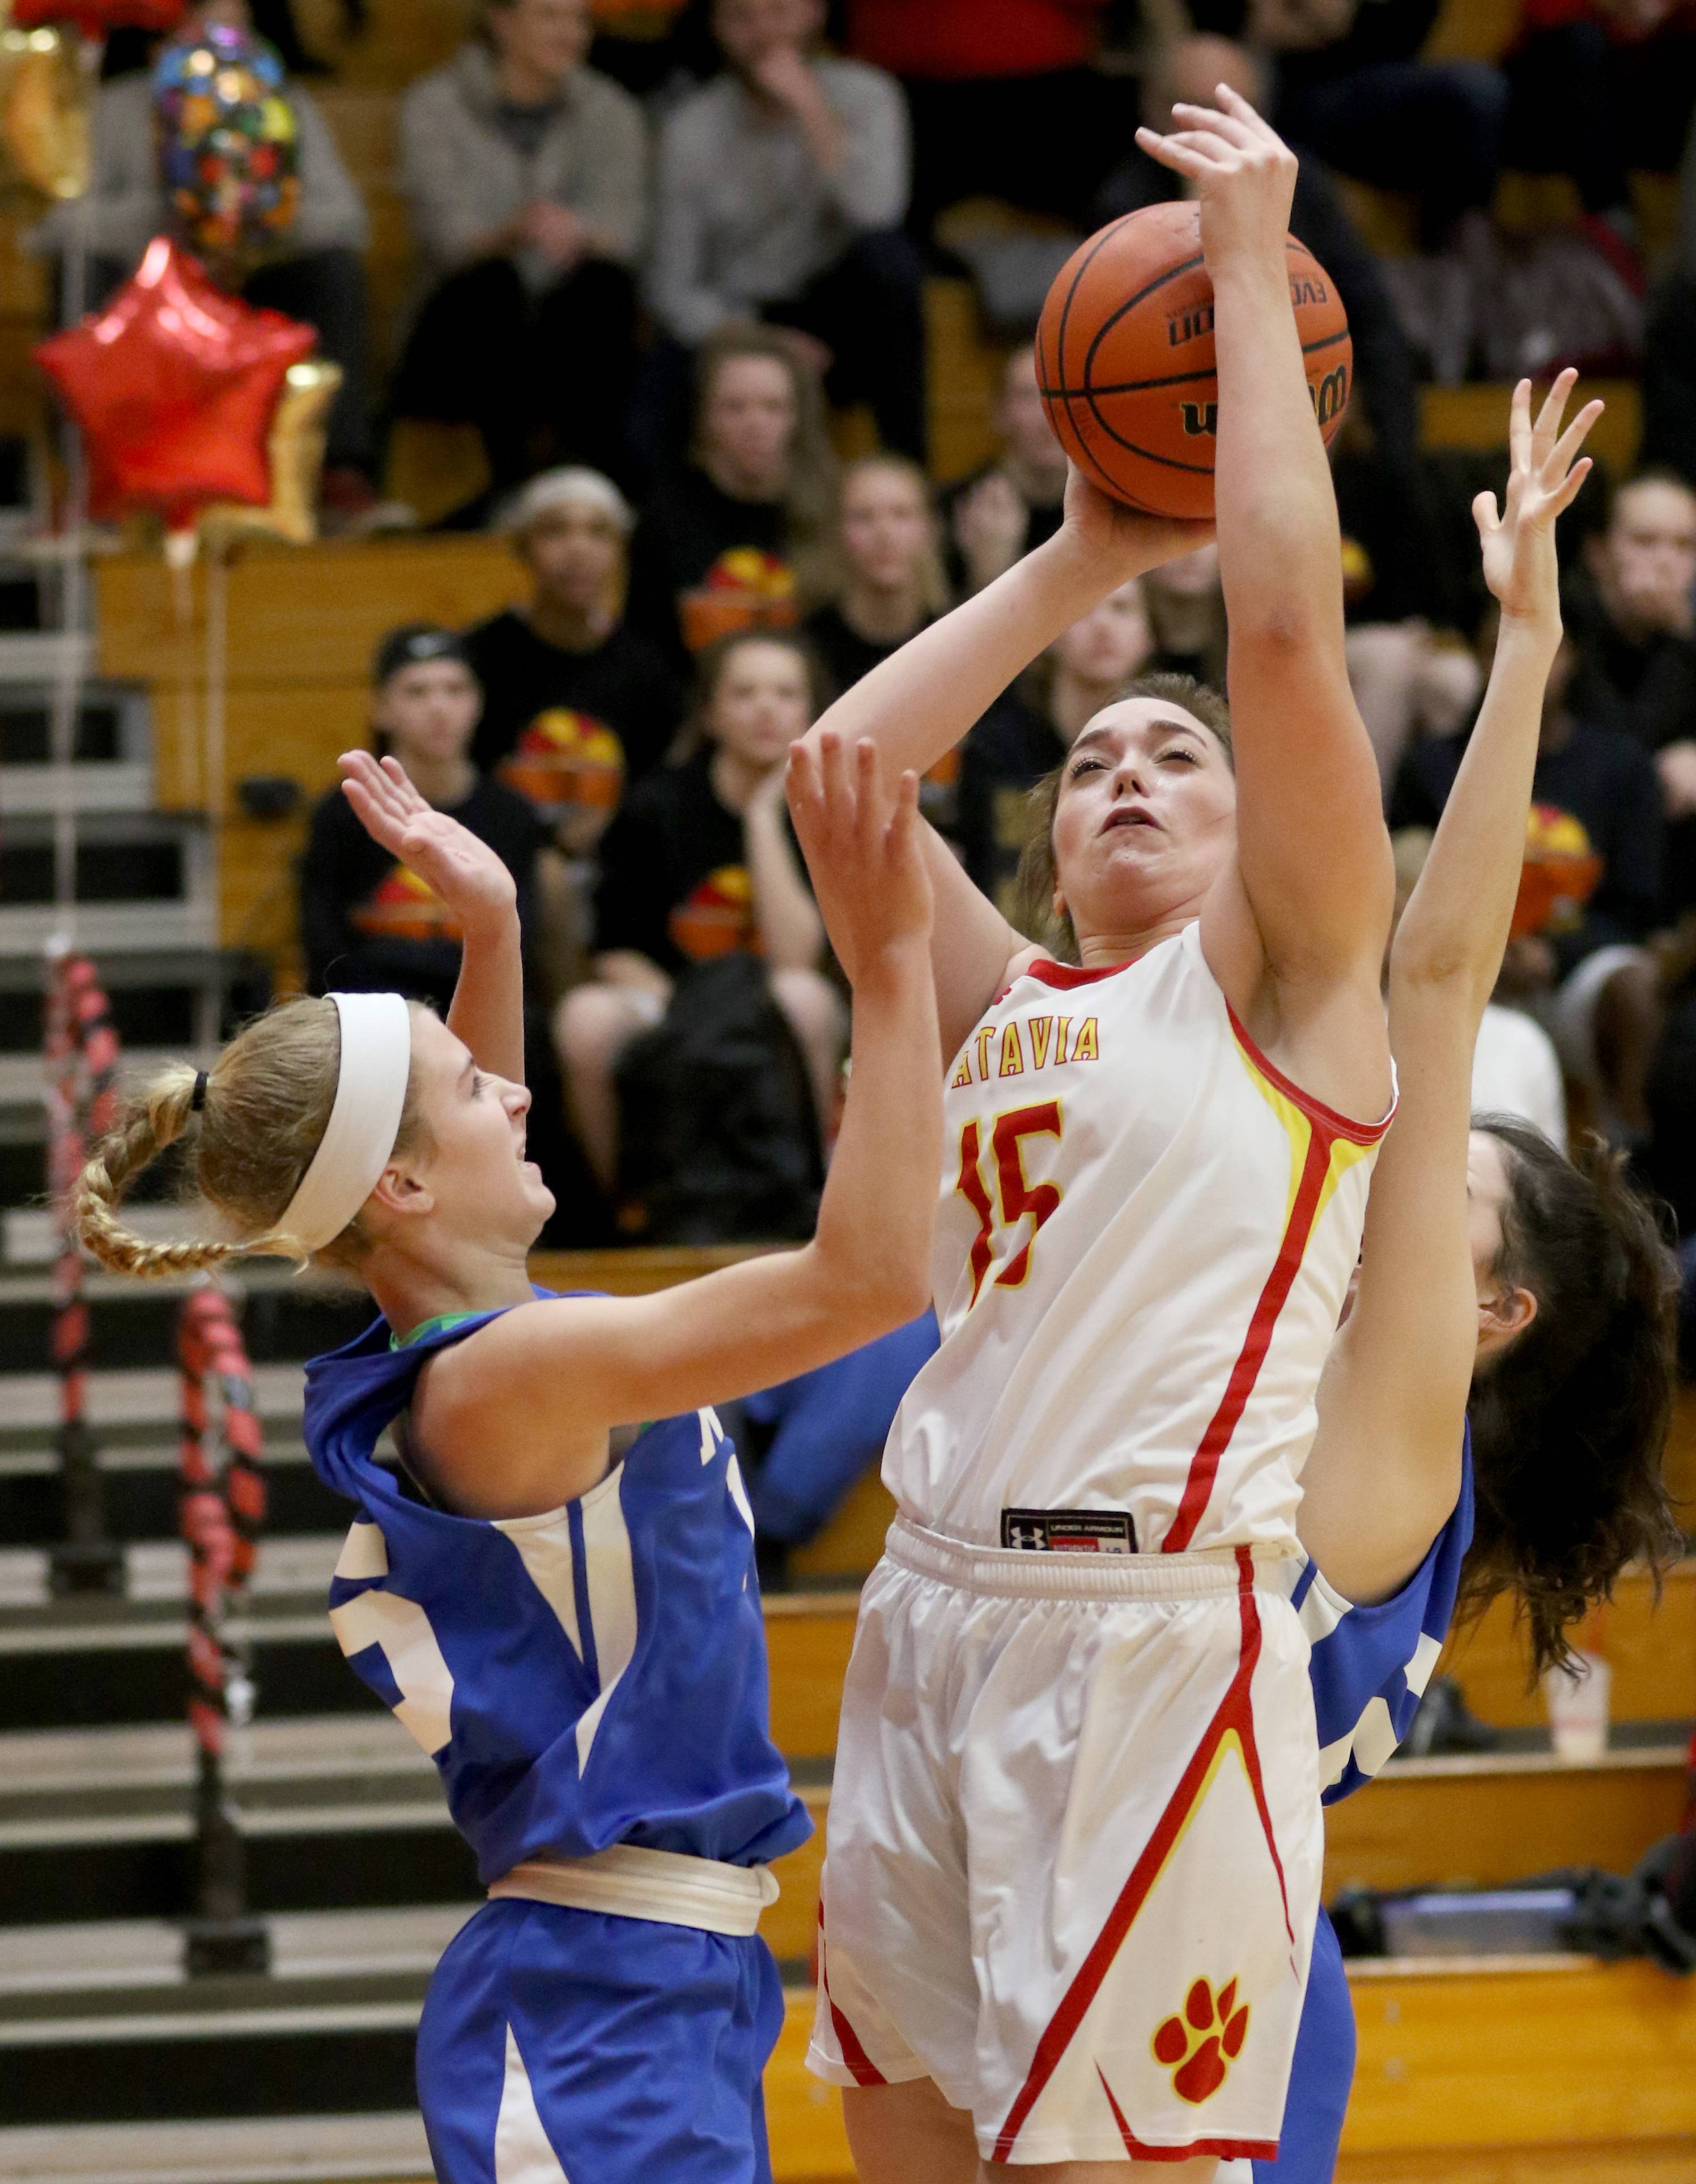 Batavia's Ava Sergio takes a shot against Wheaton North during varsity girls basketball at Batavia Thursday night.